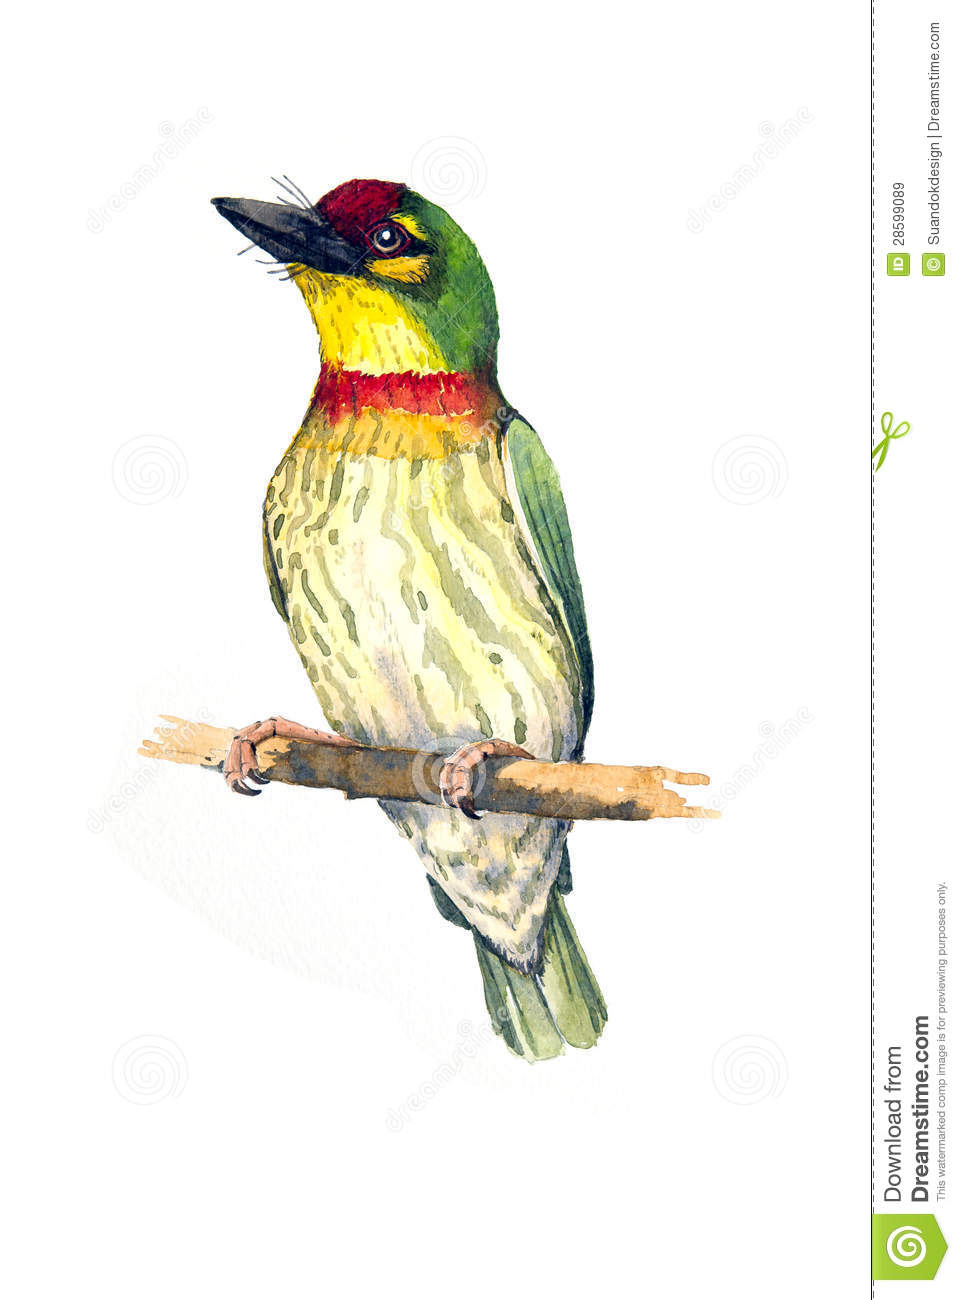 Coppersmith Barbet clipart #18, Download drawings